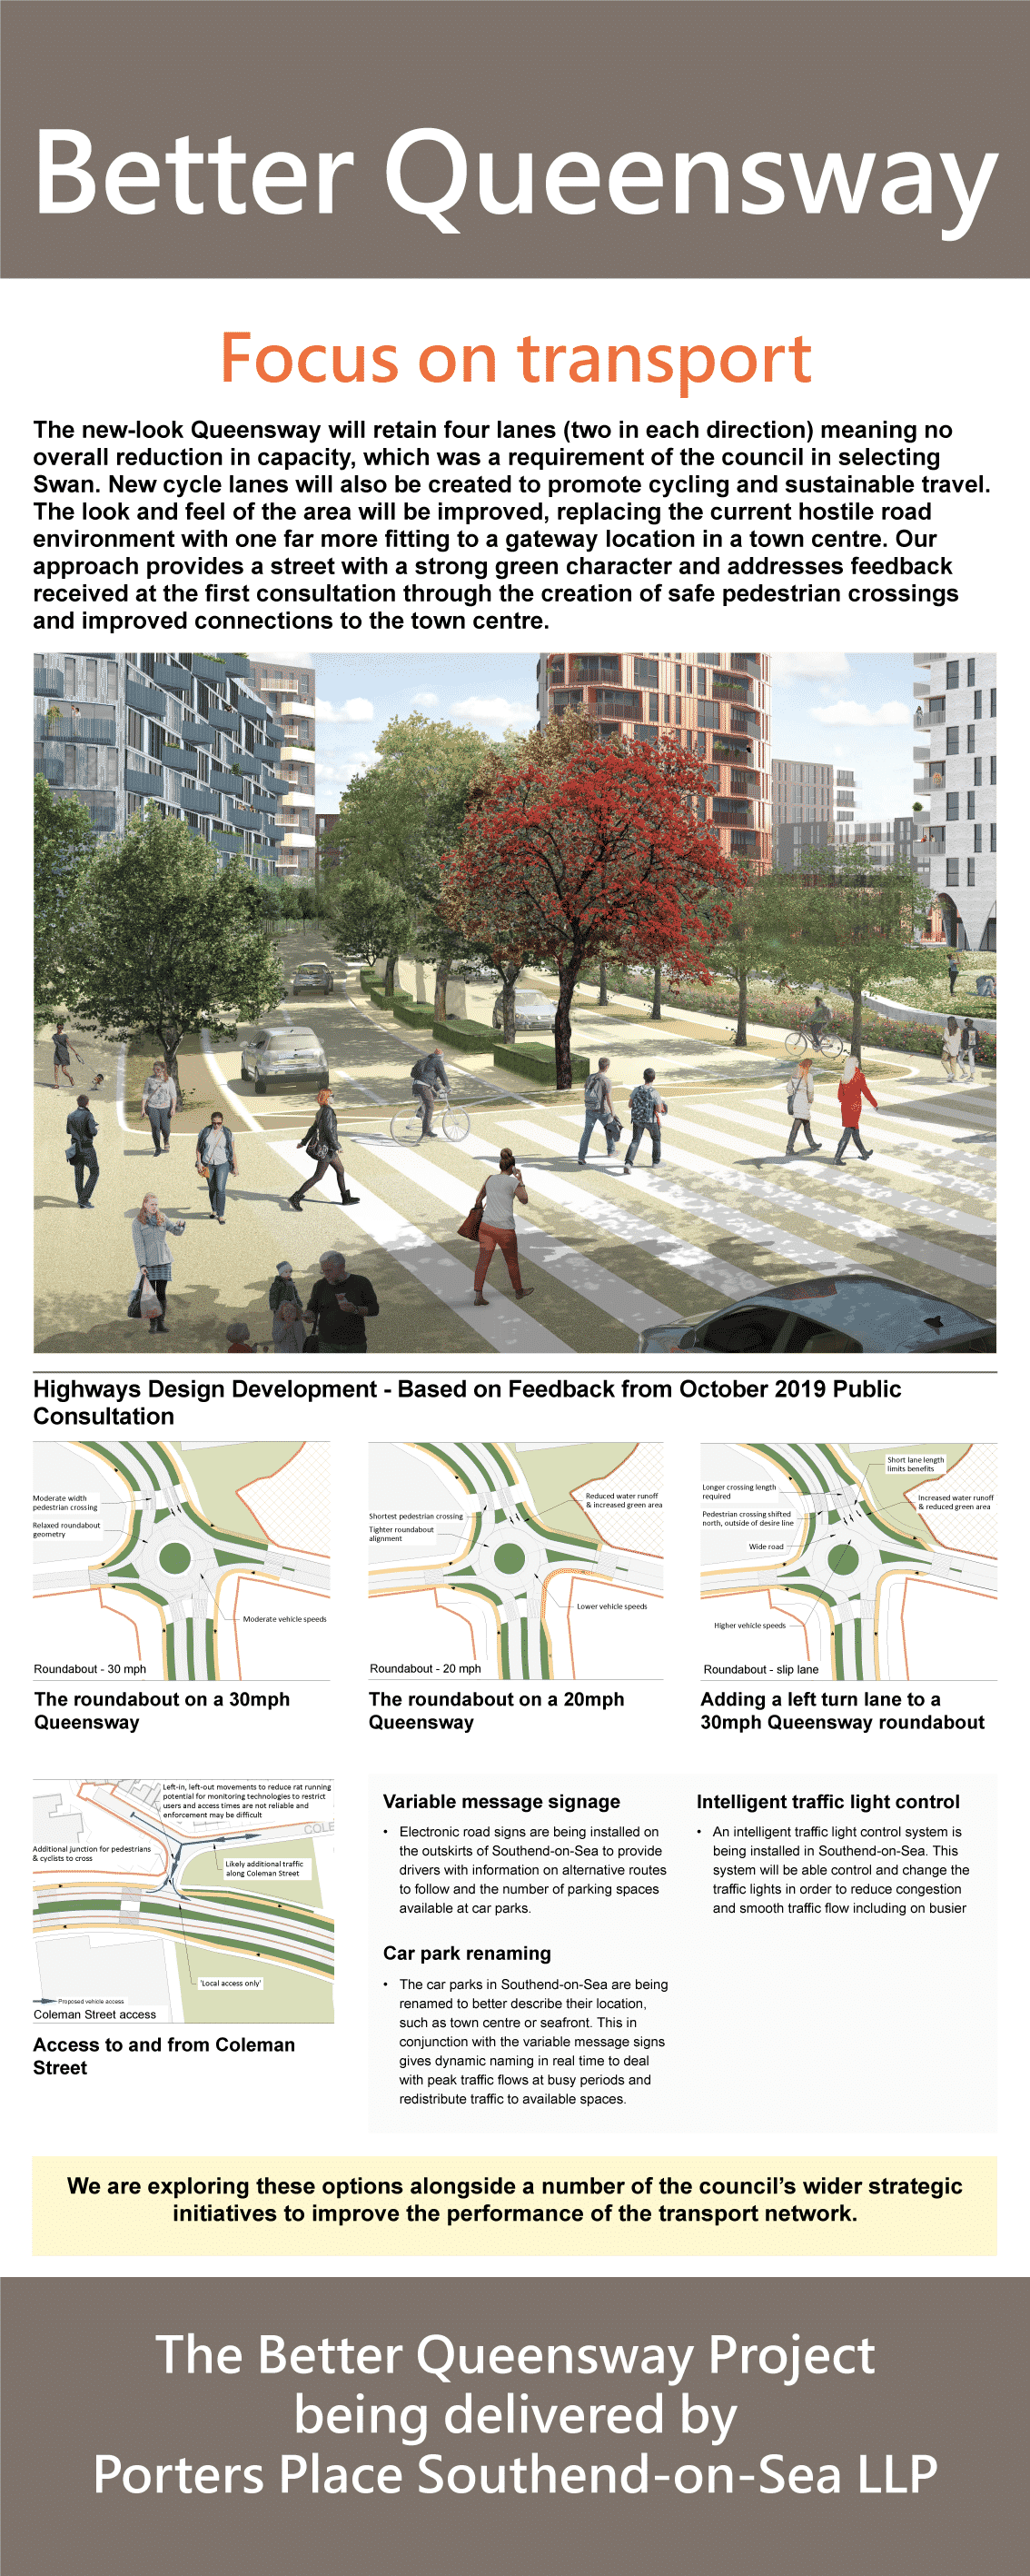 better-queensway-second-public-consultation